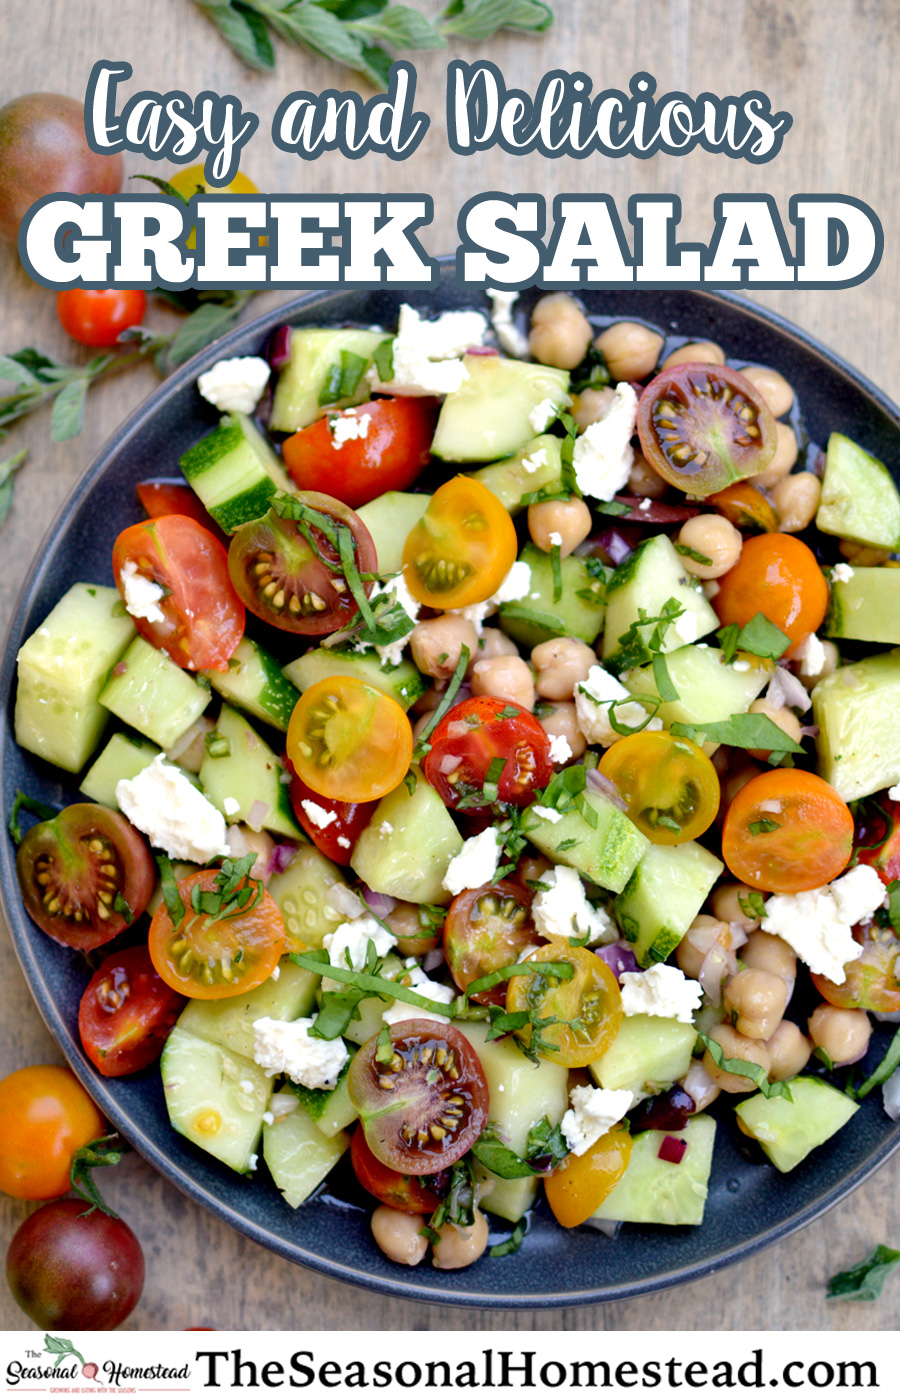 Easy-and-delicious-greek-salad.jpg